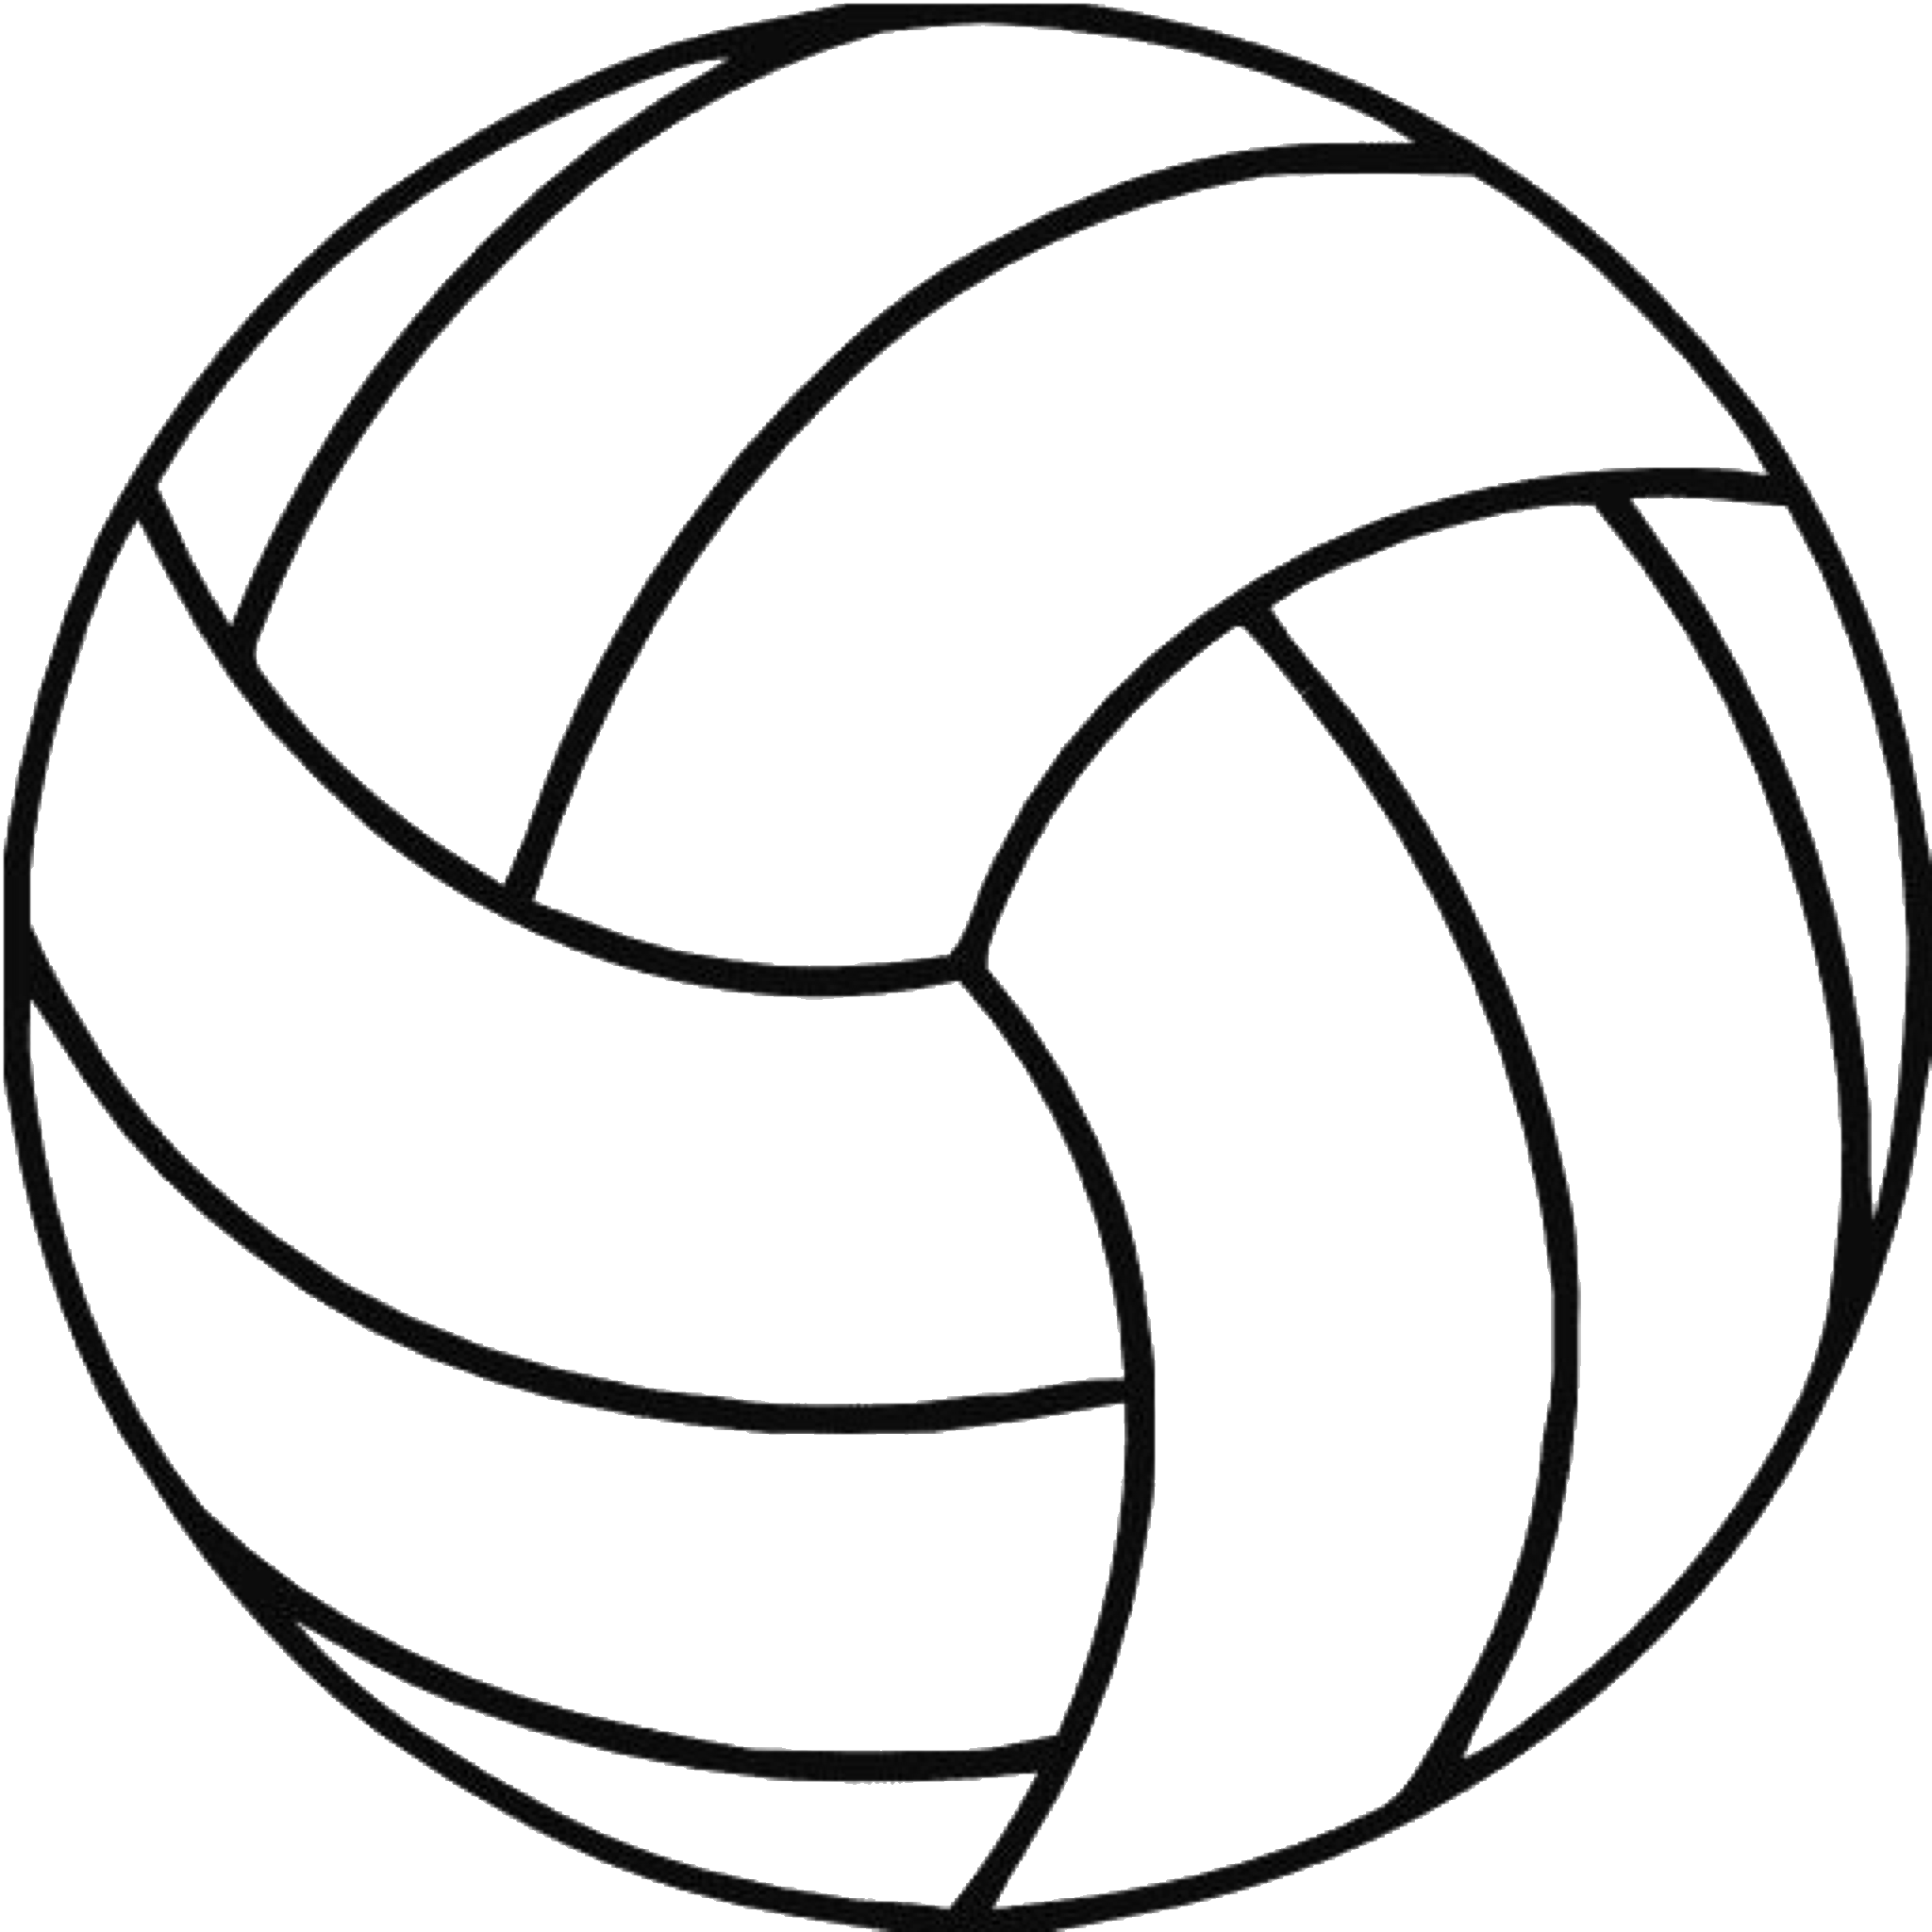 Pin Van Michaela Op Fashion Templates Vectors Volleybal Patronen Sport